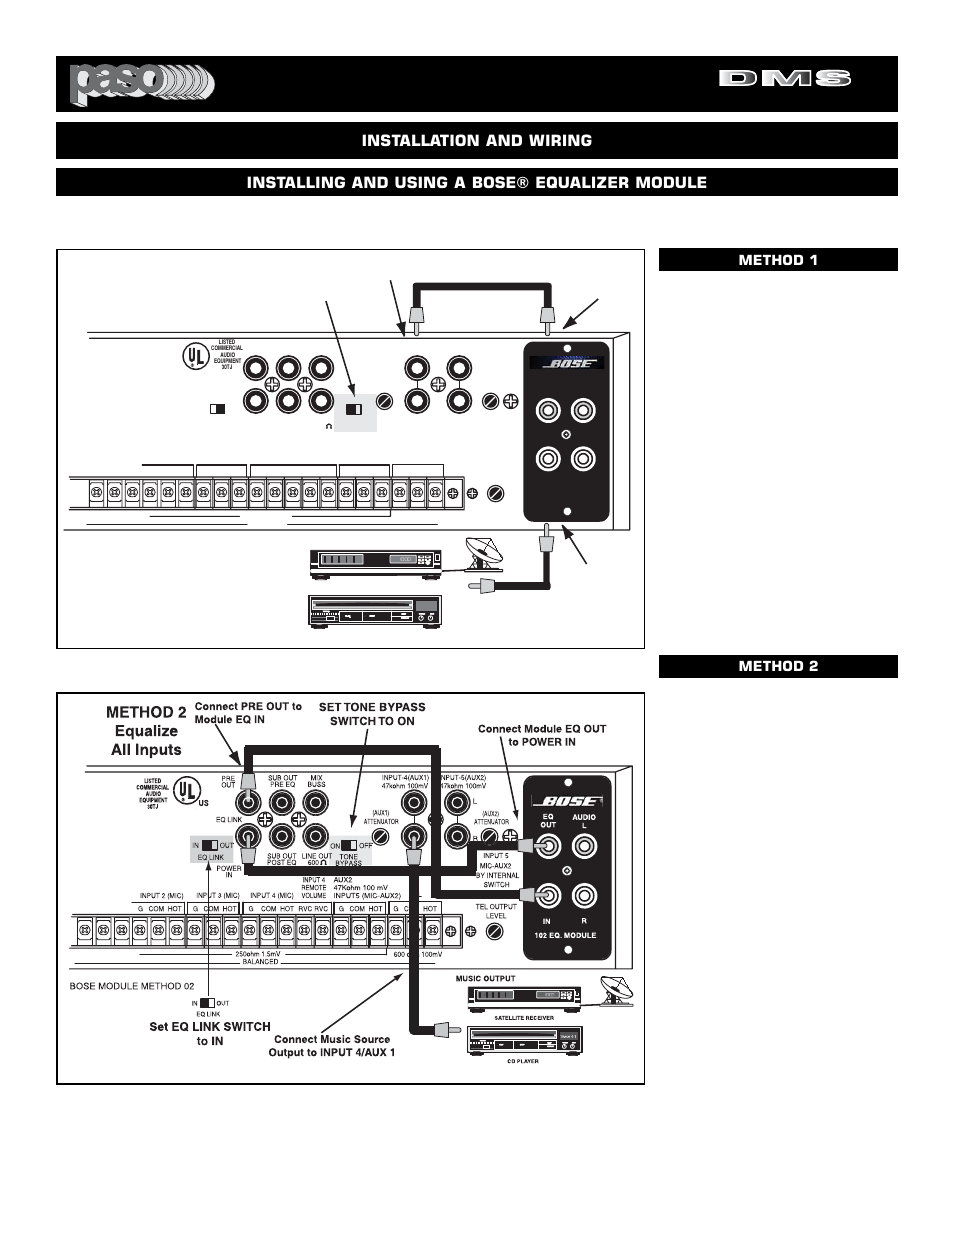 Digital Music Amplifiers Method 1 Equalize Only Page 29 El Eq To Reciever Wiring Diagram Paso Chile Company Dms 3080 80 User Manual 32